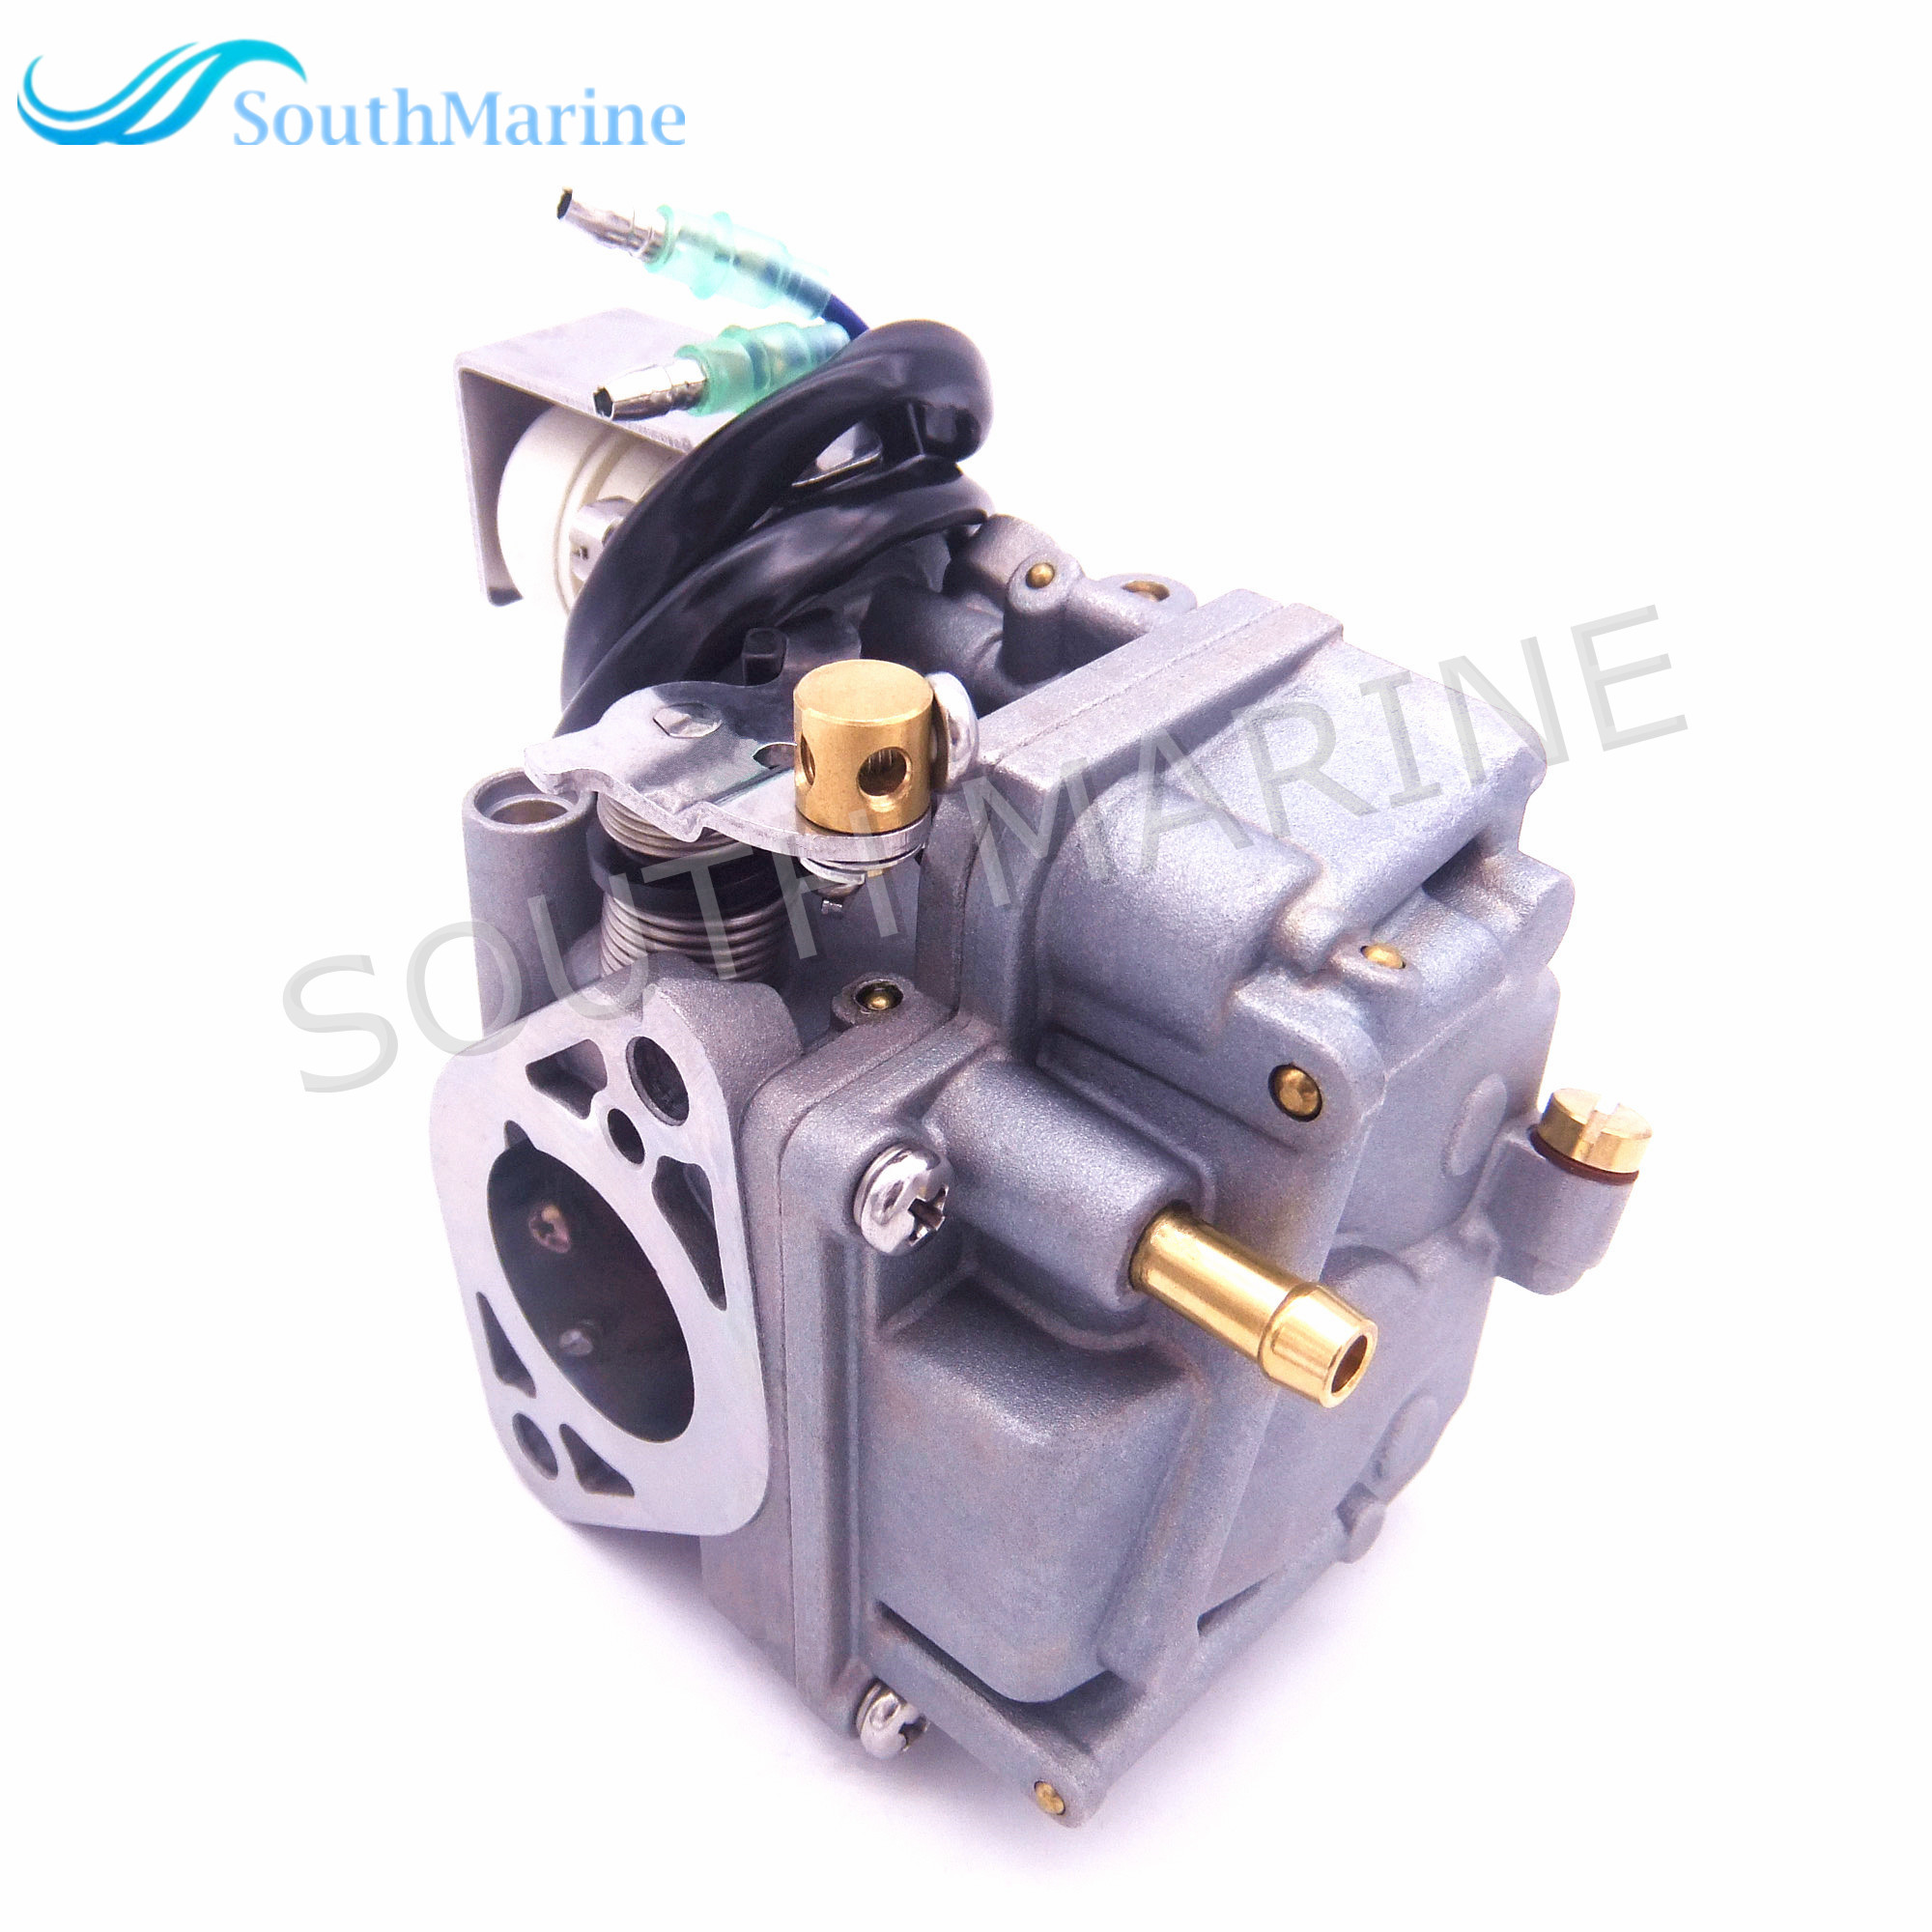 Boat Motor Carburetor Assy 6AH-14301-00 6AH-14301-01 for Yamaha 4-stroke F20 Outboard Engine